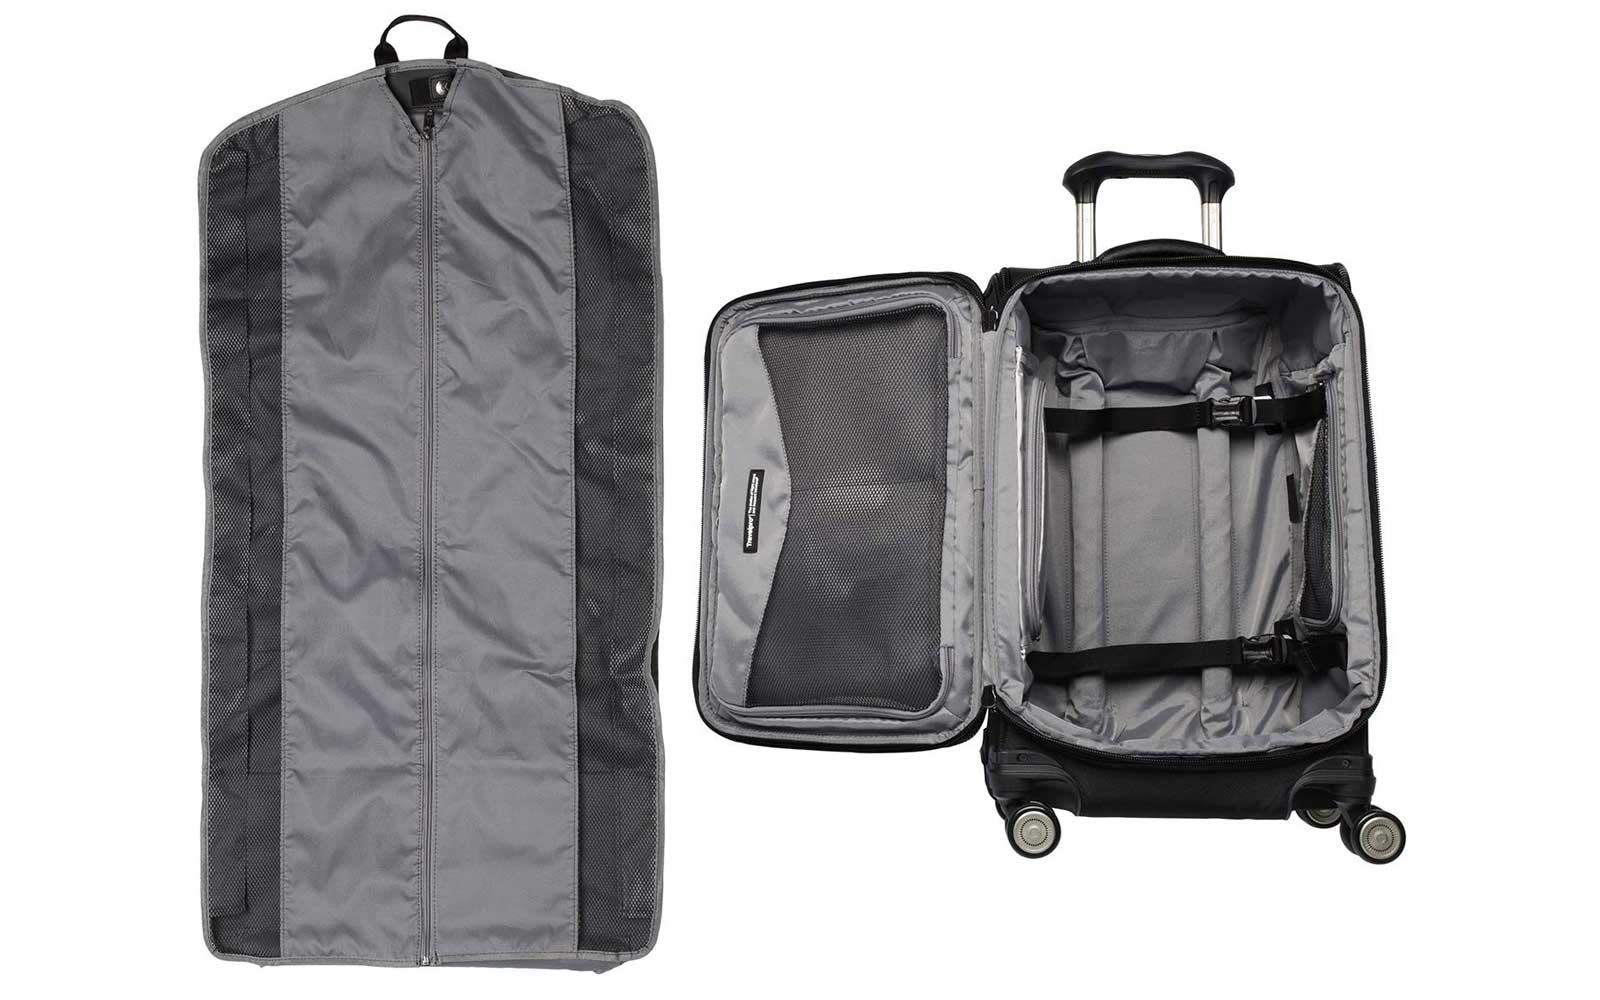 Black Travelpro Suitcase Interior